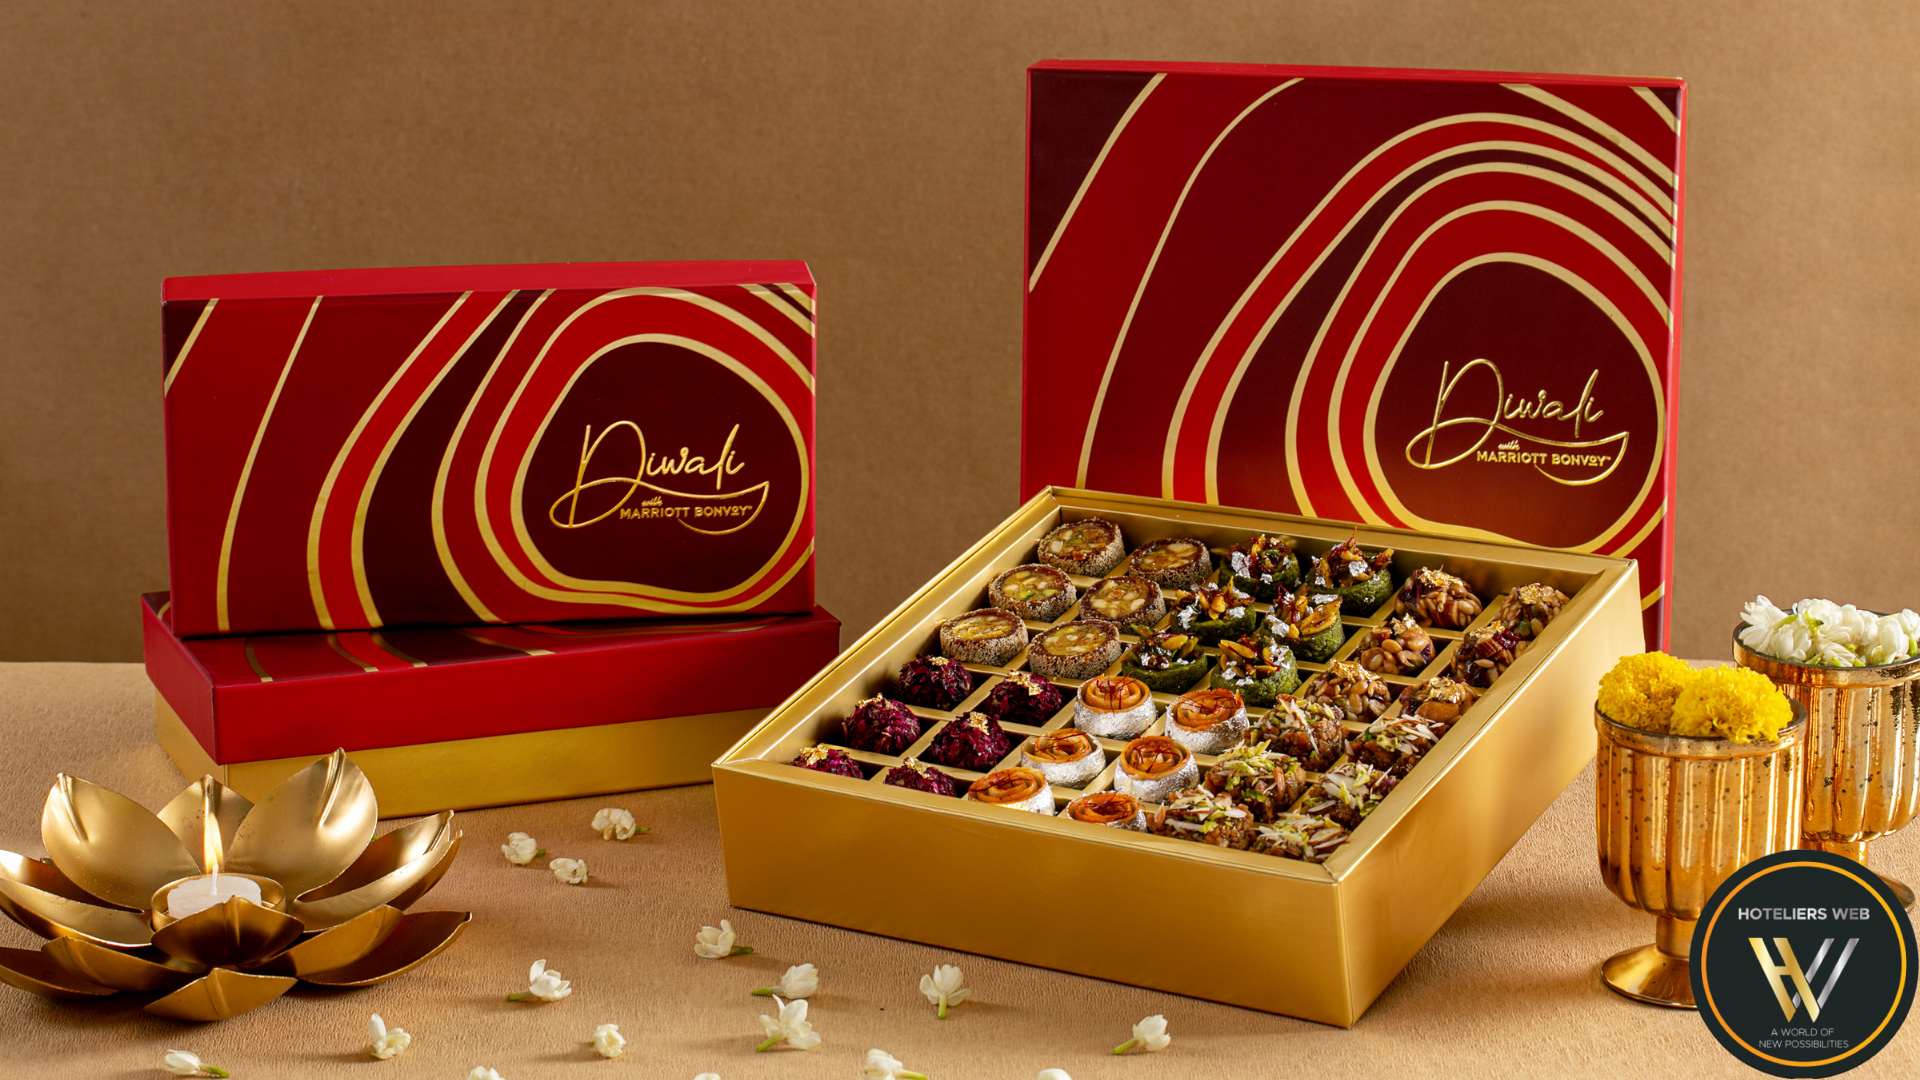 DIWALI WITH MARRIOTT BONVOY BRINGS TO YOU HANDCRAFTED DELICACIES TO SET THE FESTIVE FERVOUR